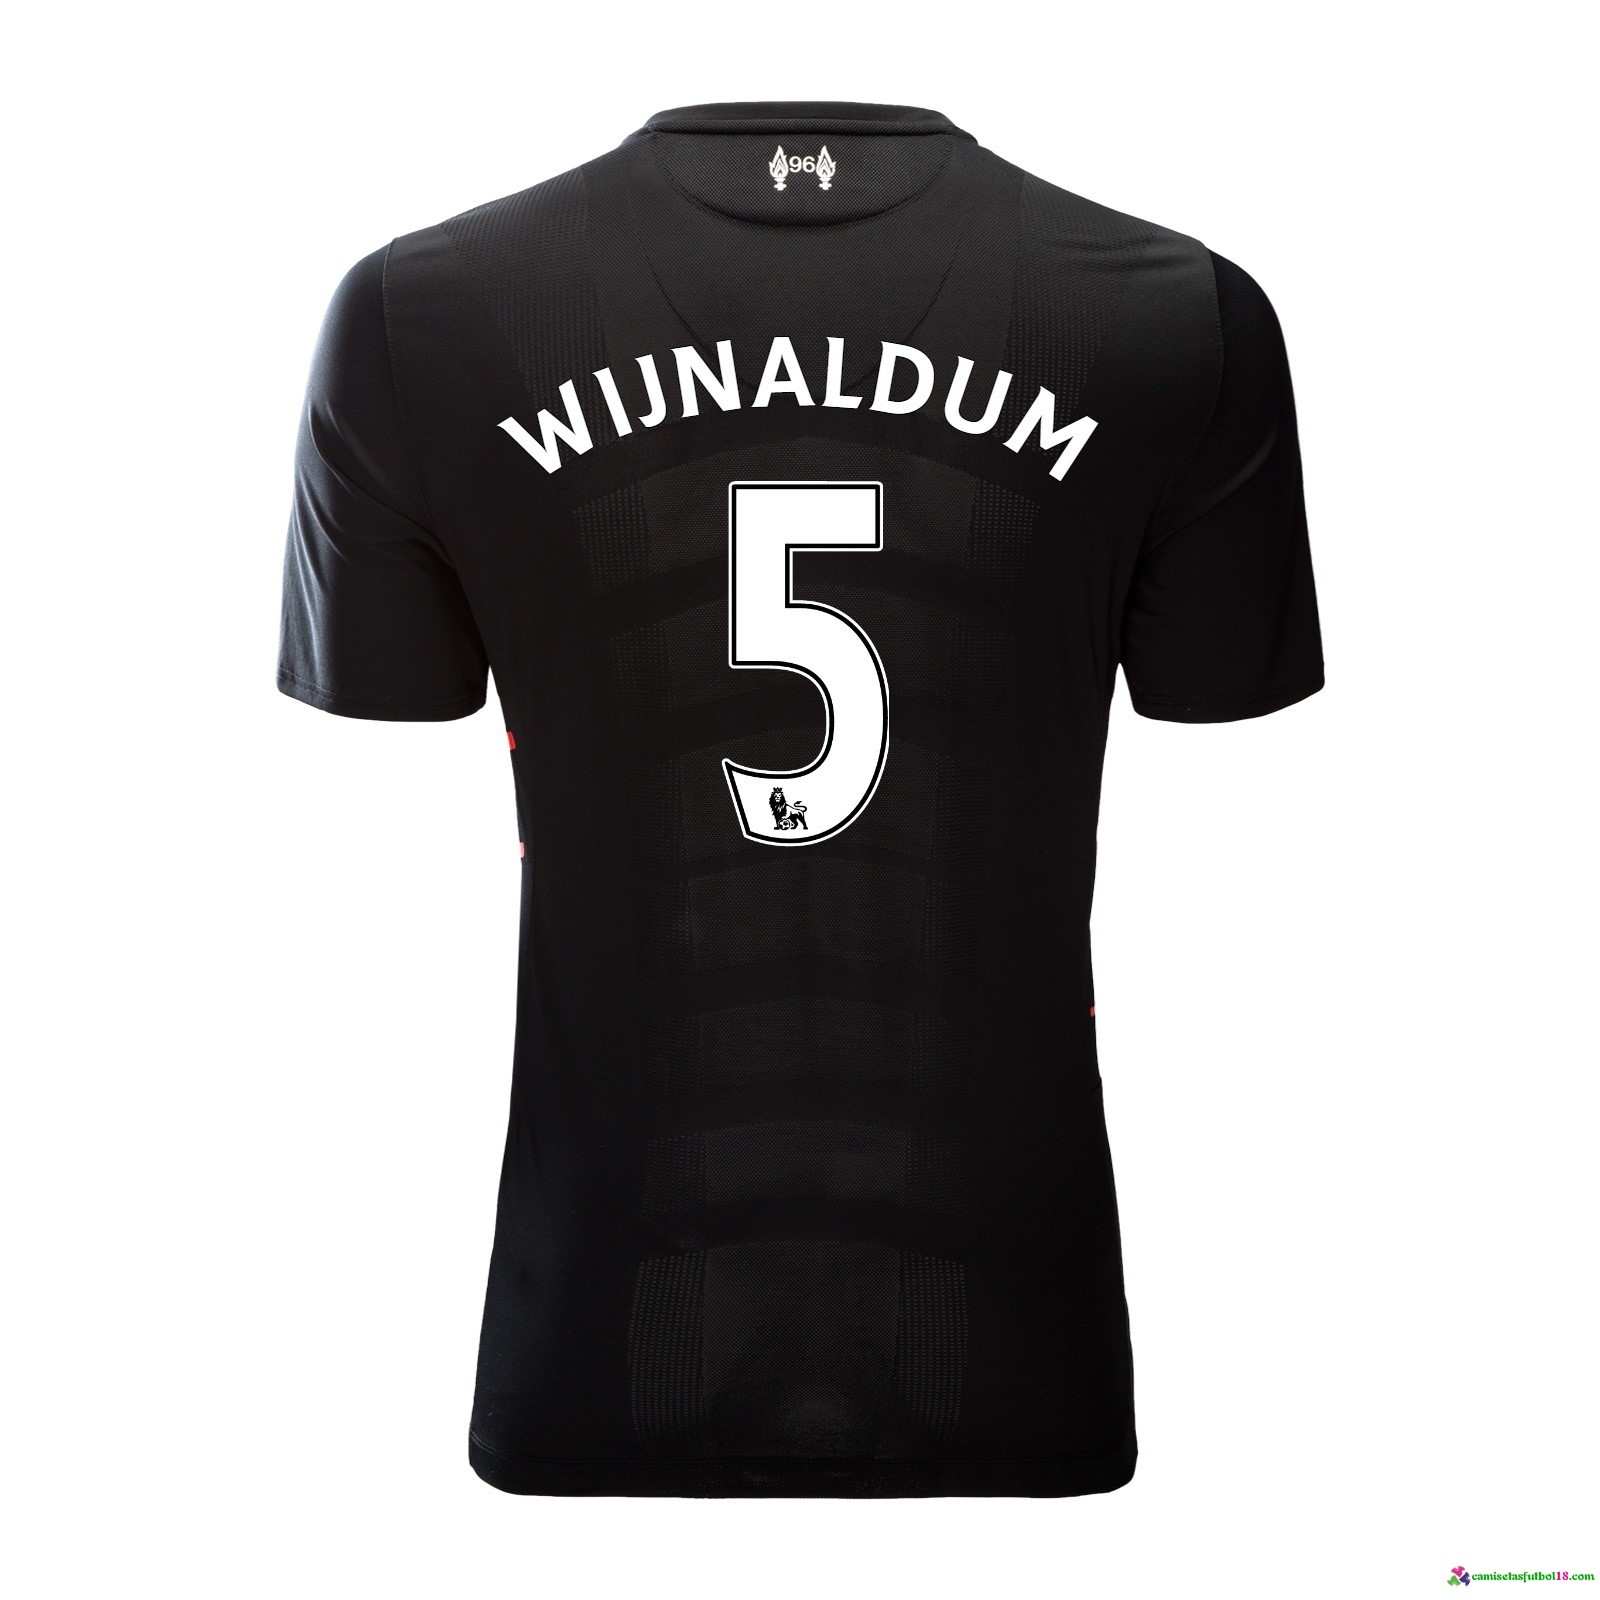 Wijnaldum Camiseta 2ª Kit Liverpool 2016 2017